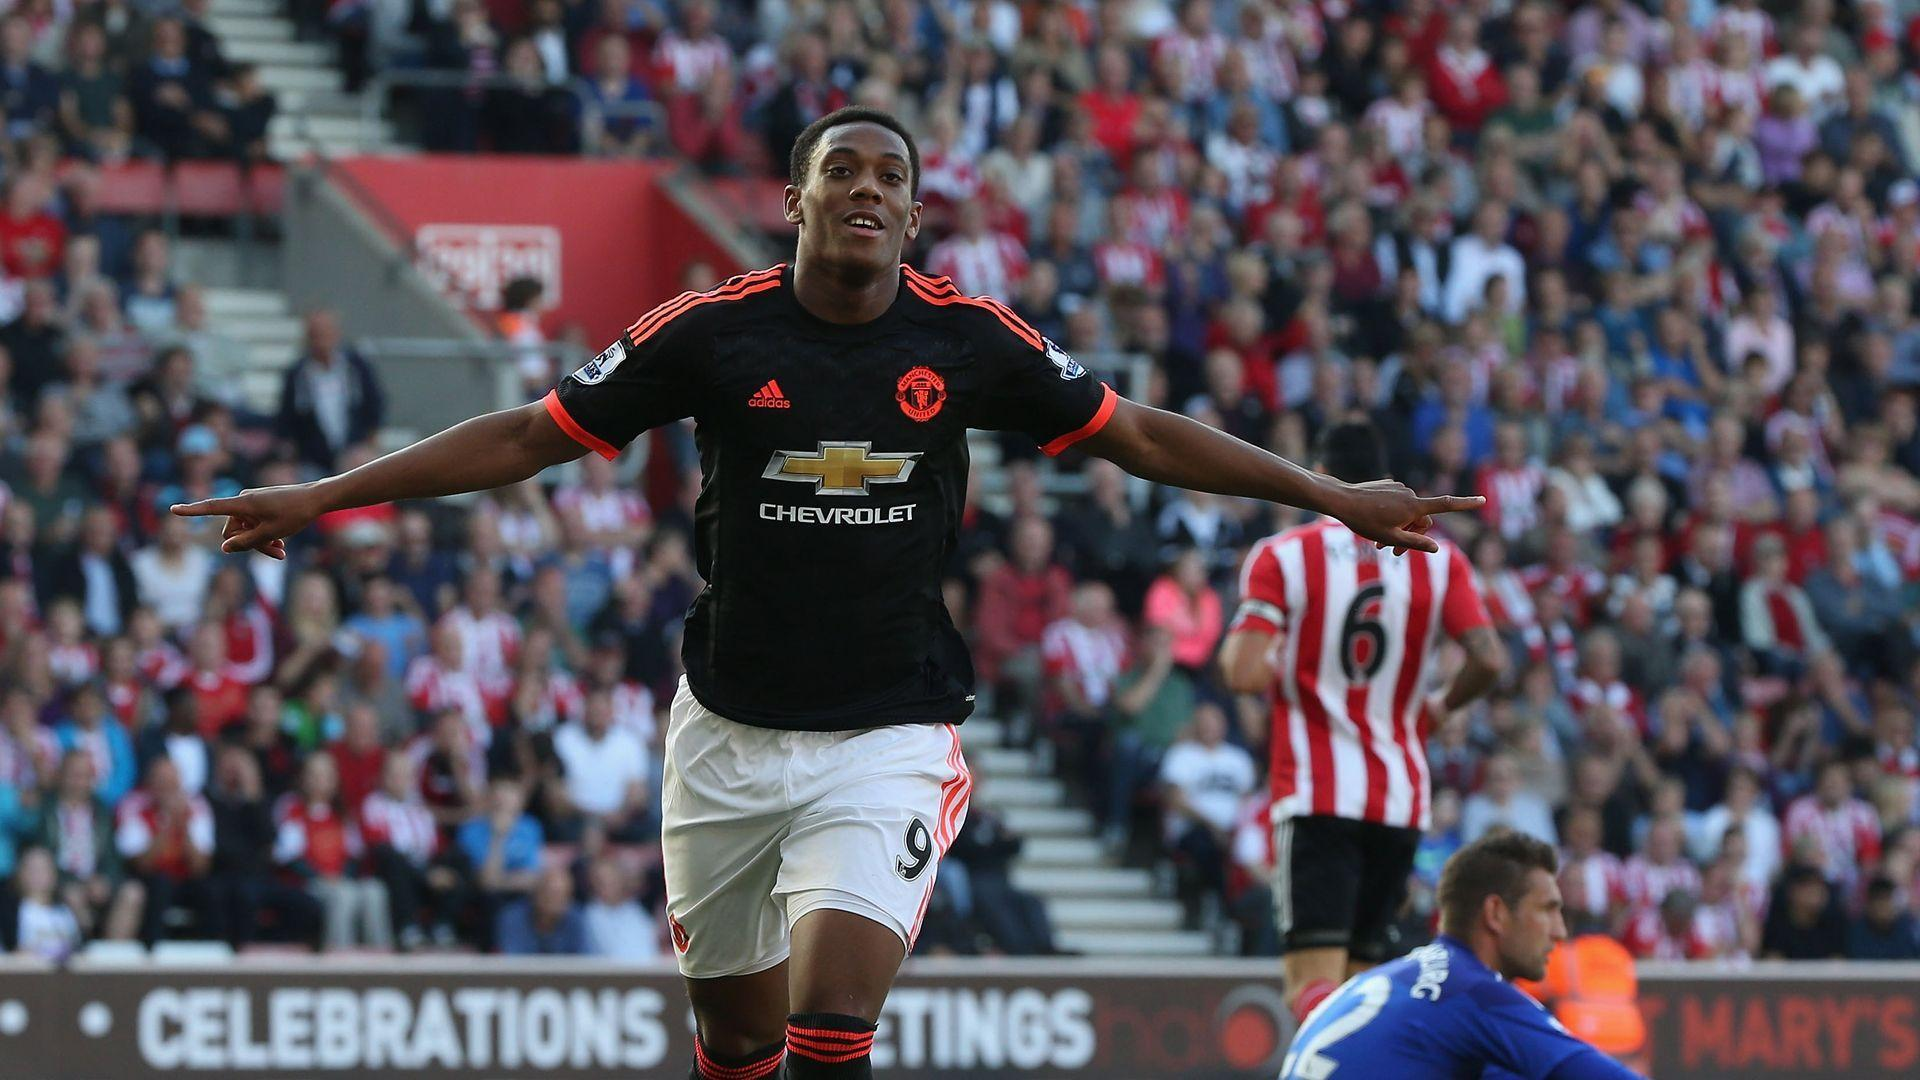 d1651c5da Anthony Martial Wallpapers - Wallpaper Cave